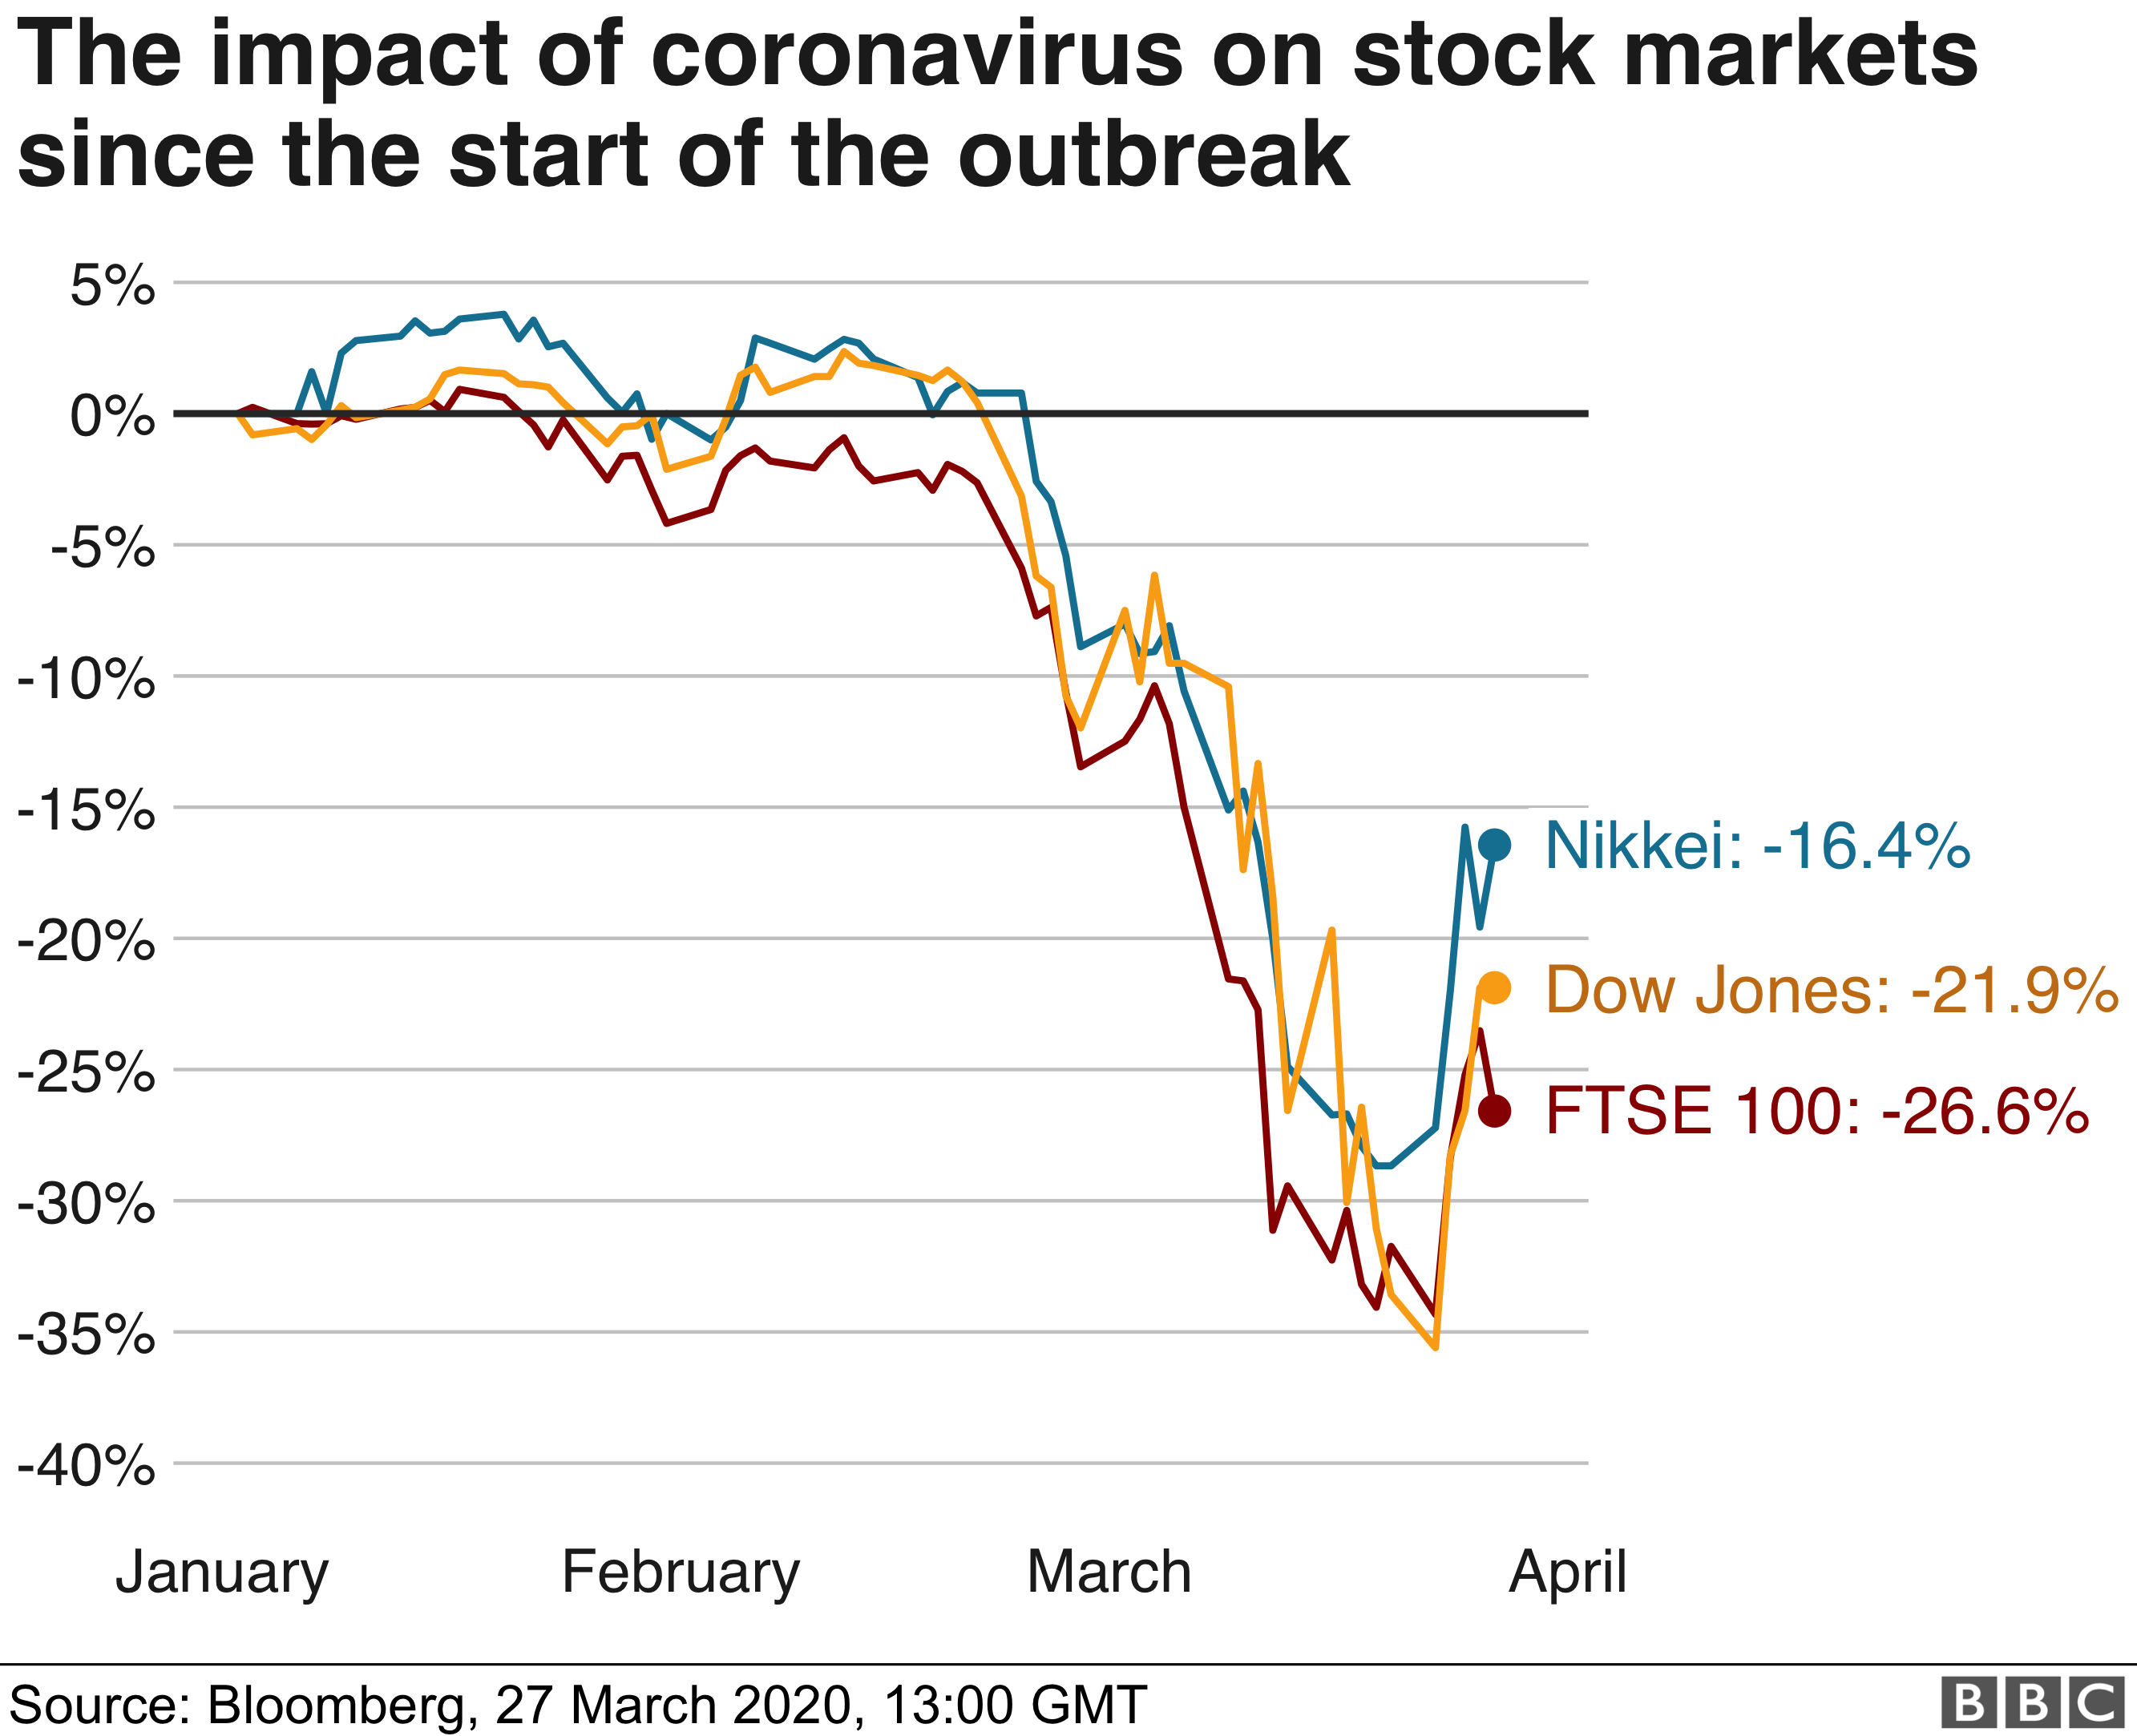 Chart showing Stock Market trends since the COVID-19 outbreak